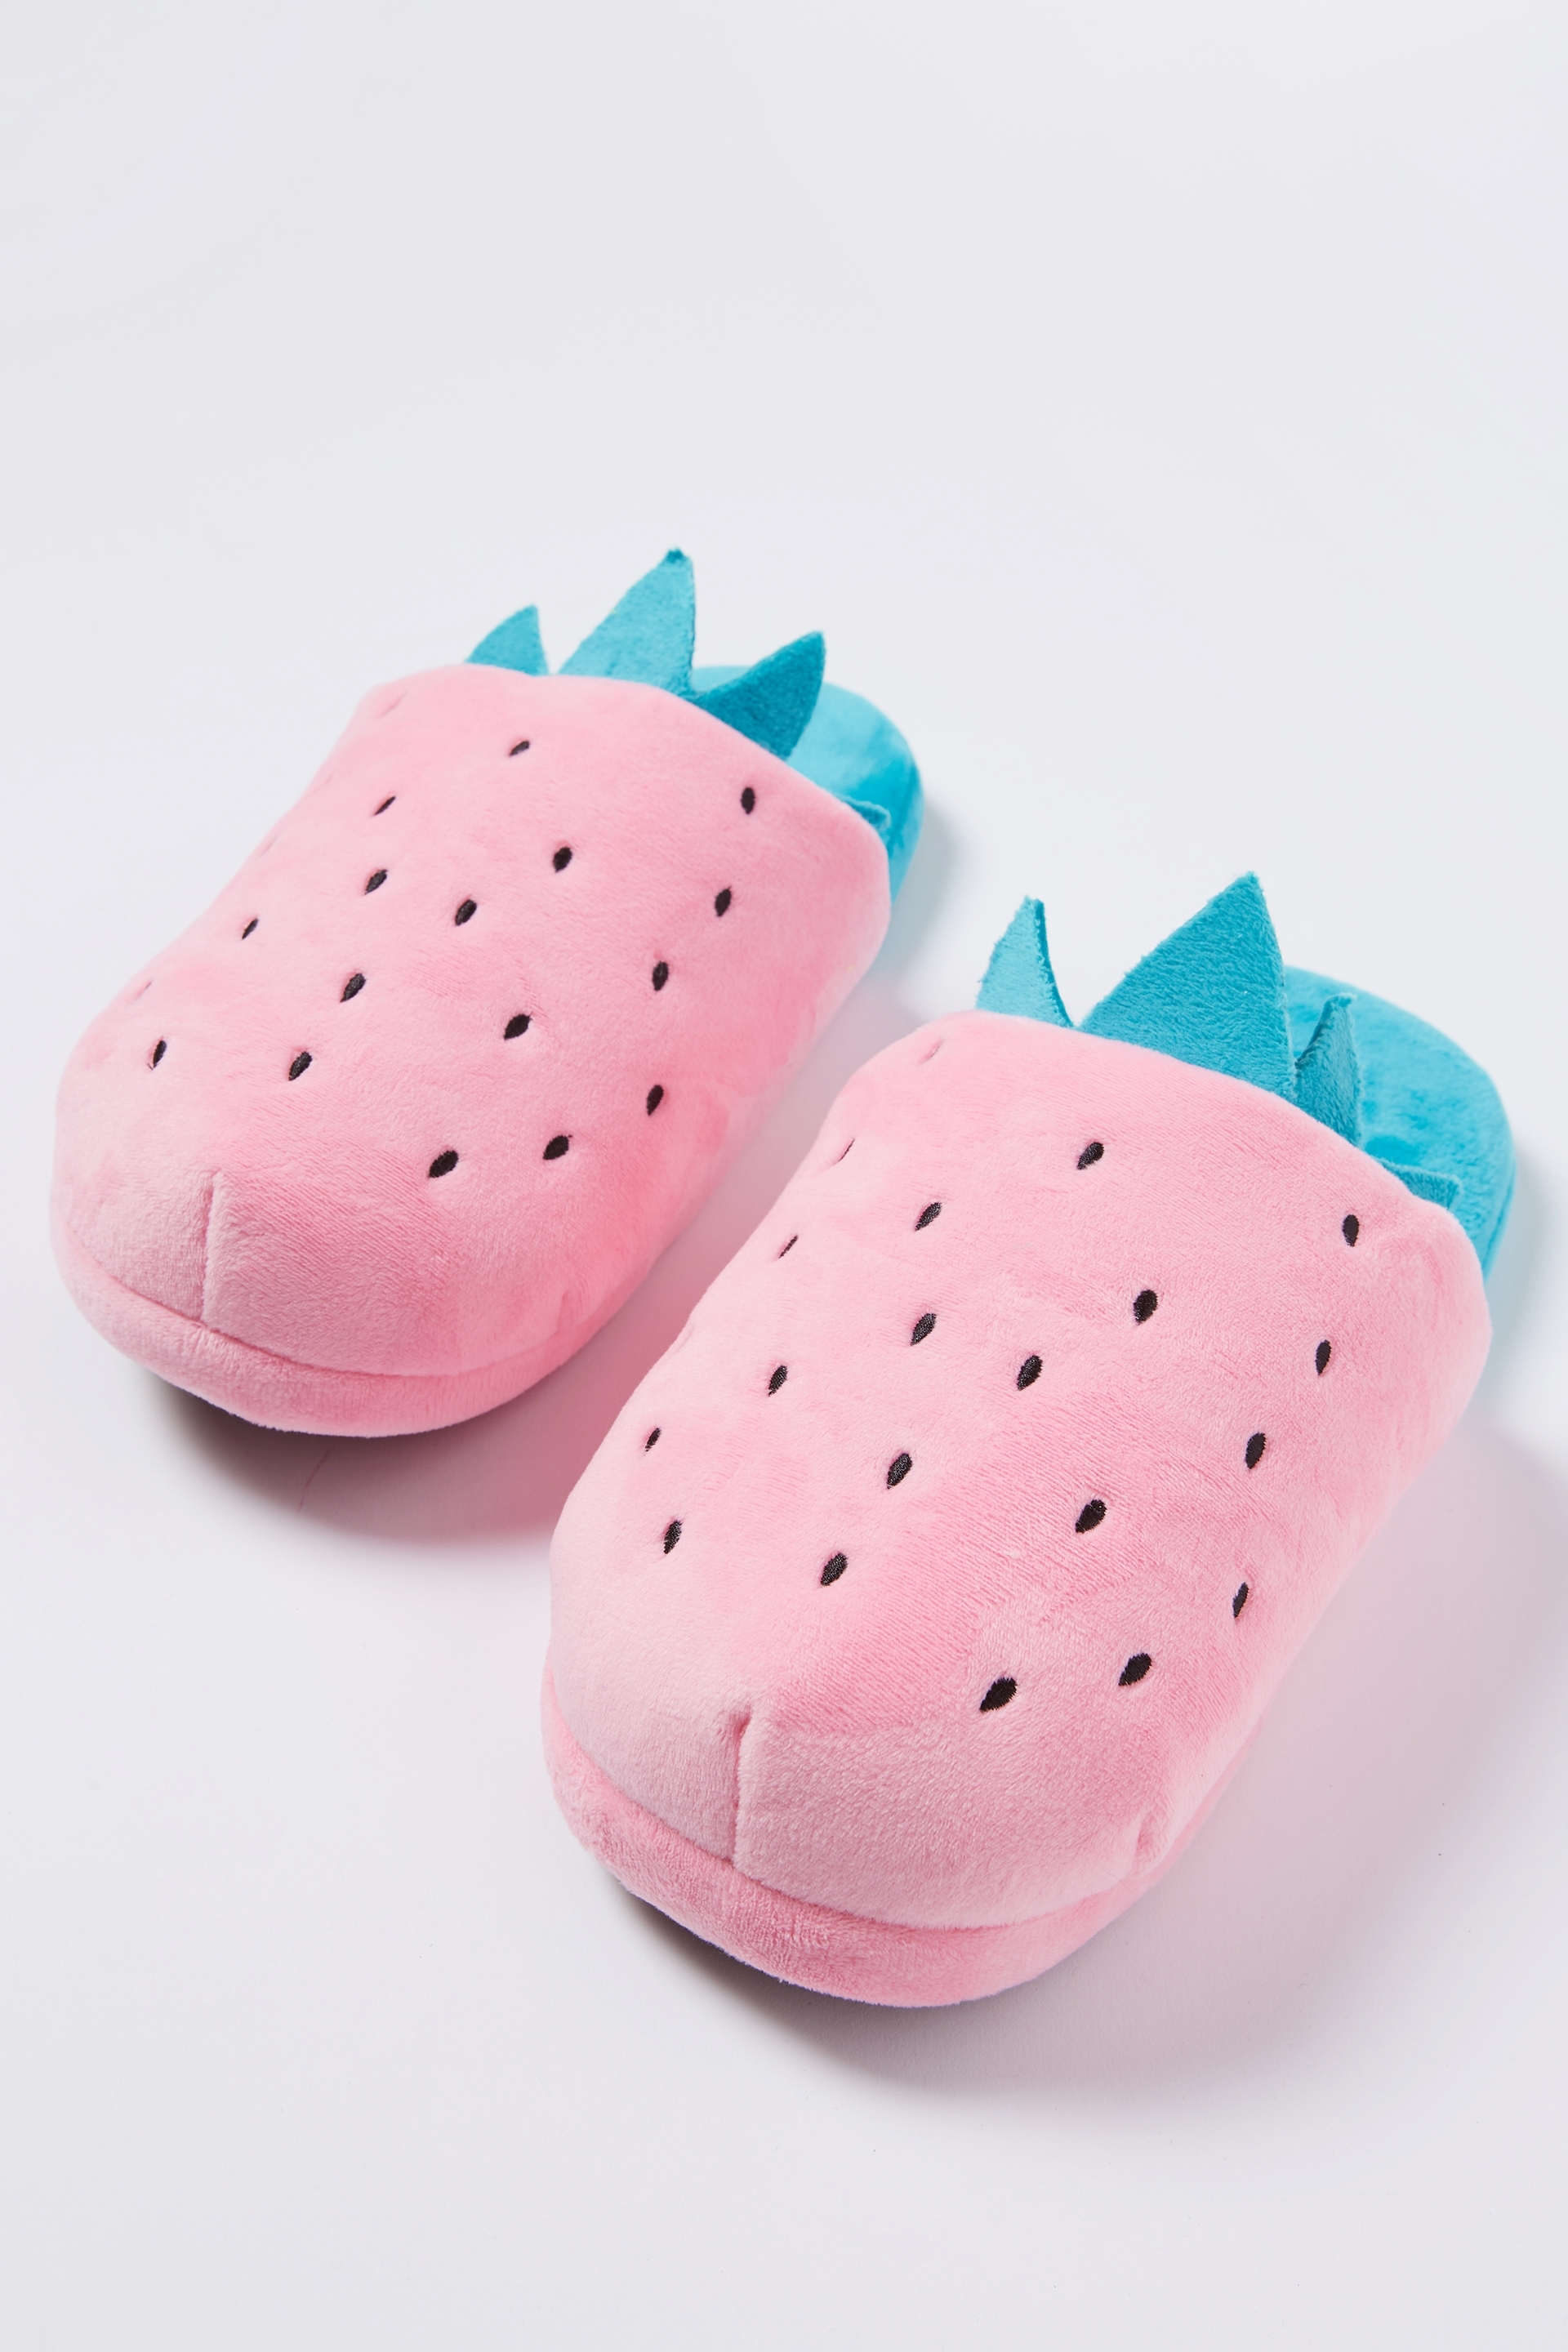 c0a49d0e4bdc Typo - Novelty Slippers - …